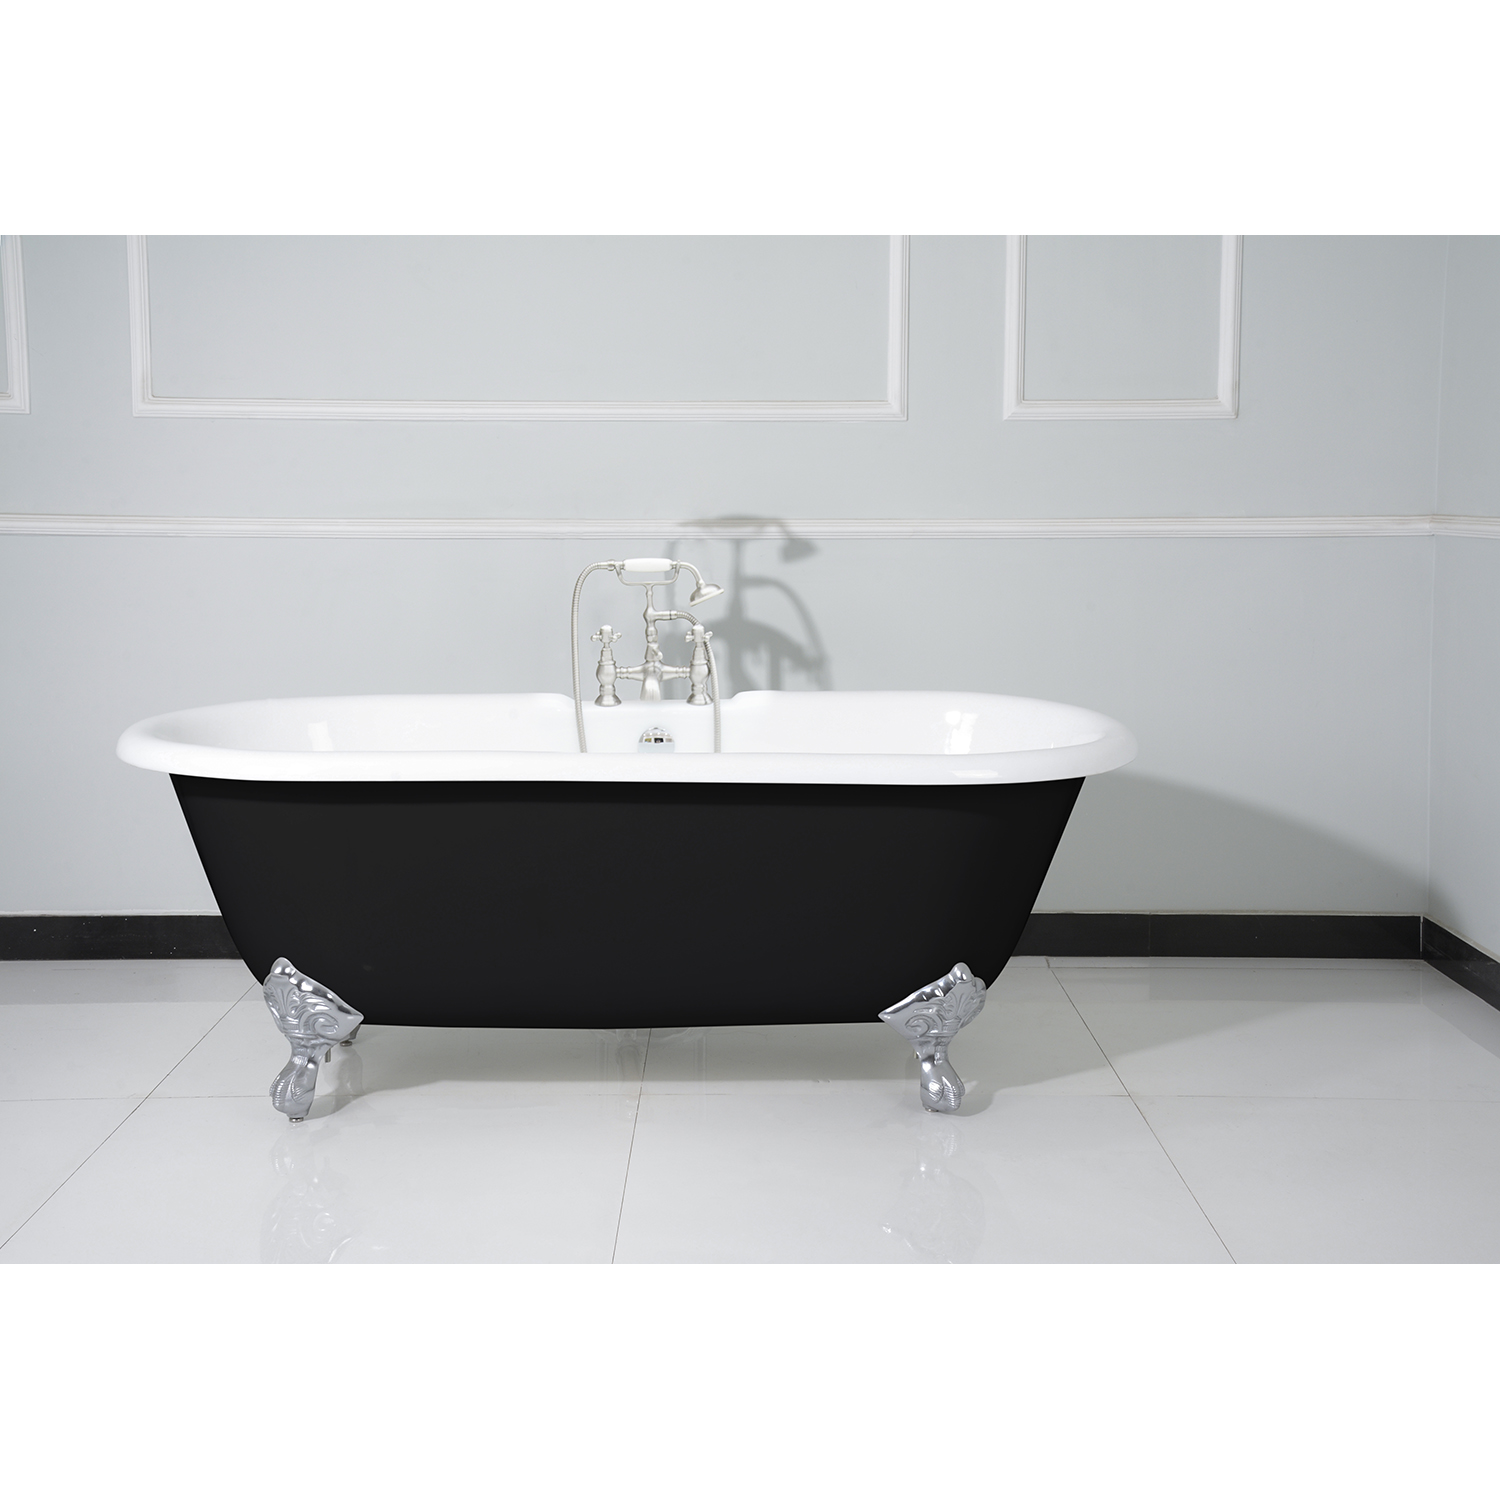 66 Double Ended Clawfoot Tub With 7 Inch Faucet Drillings And Feet Black White Polished Chrome